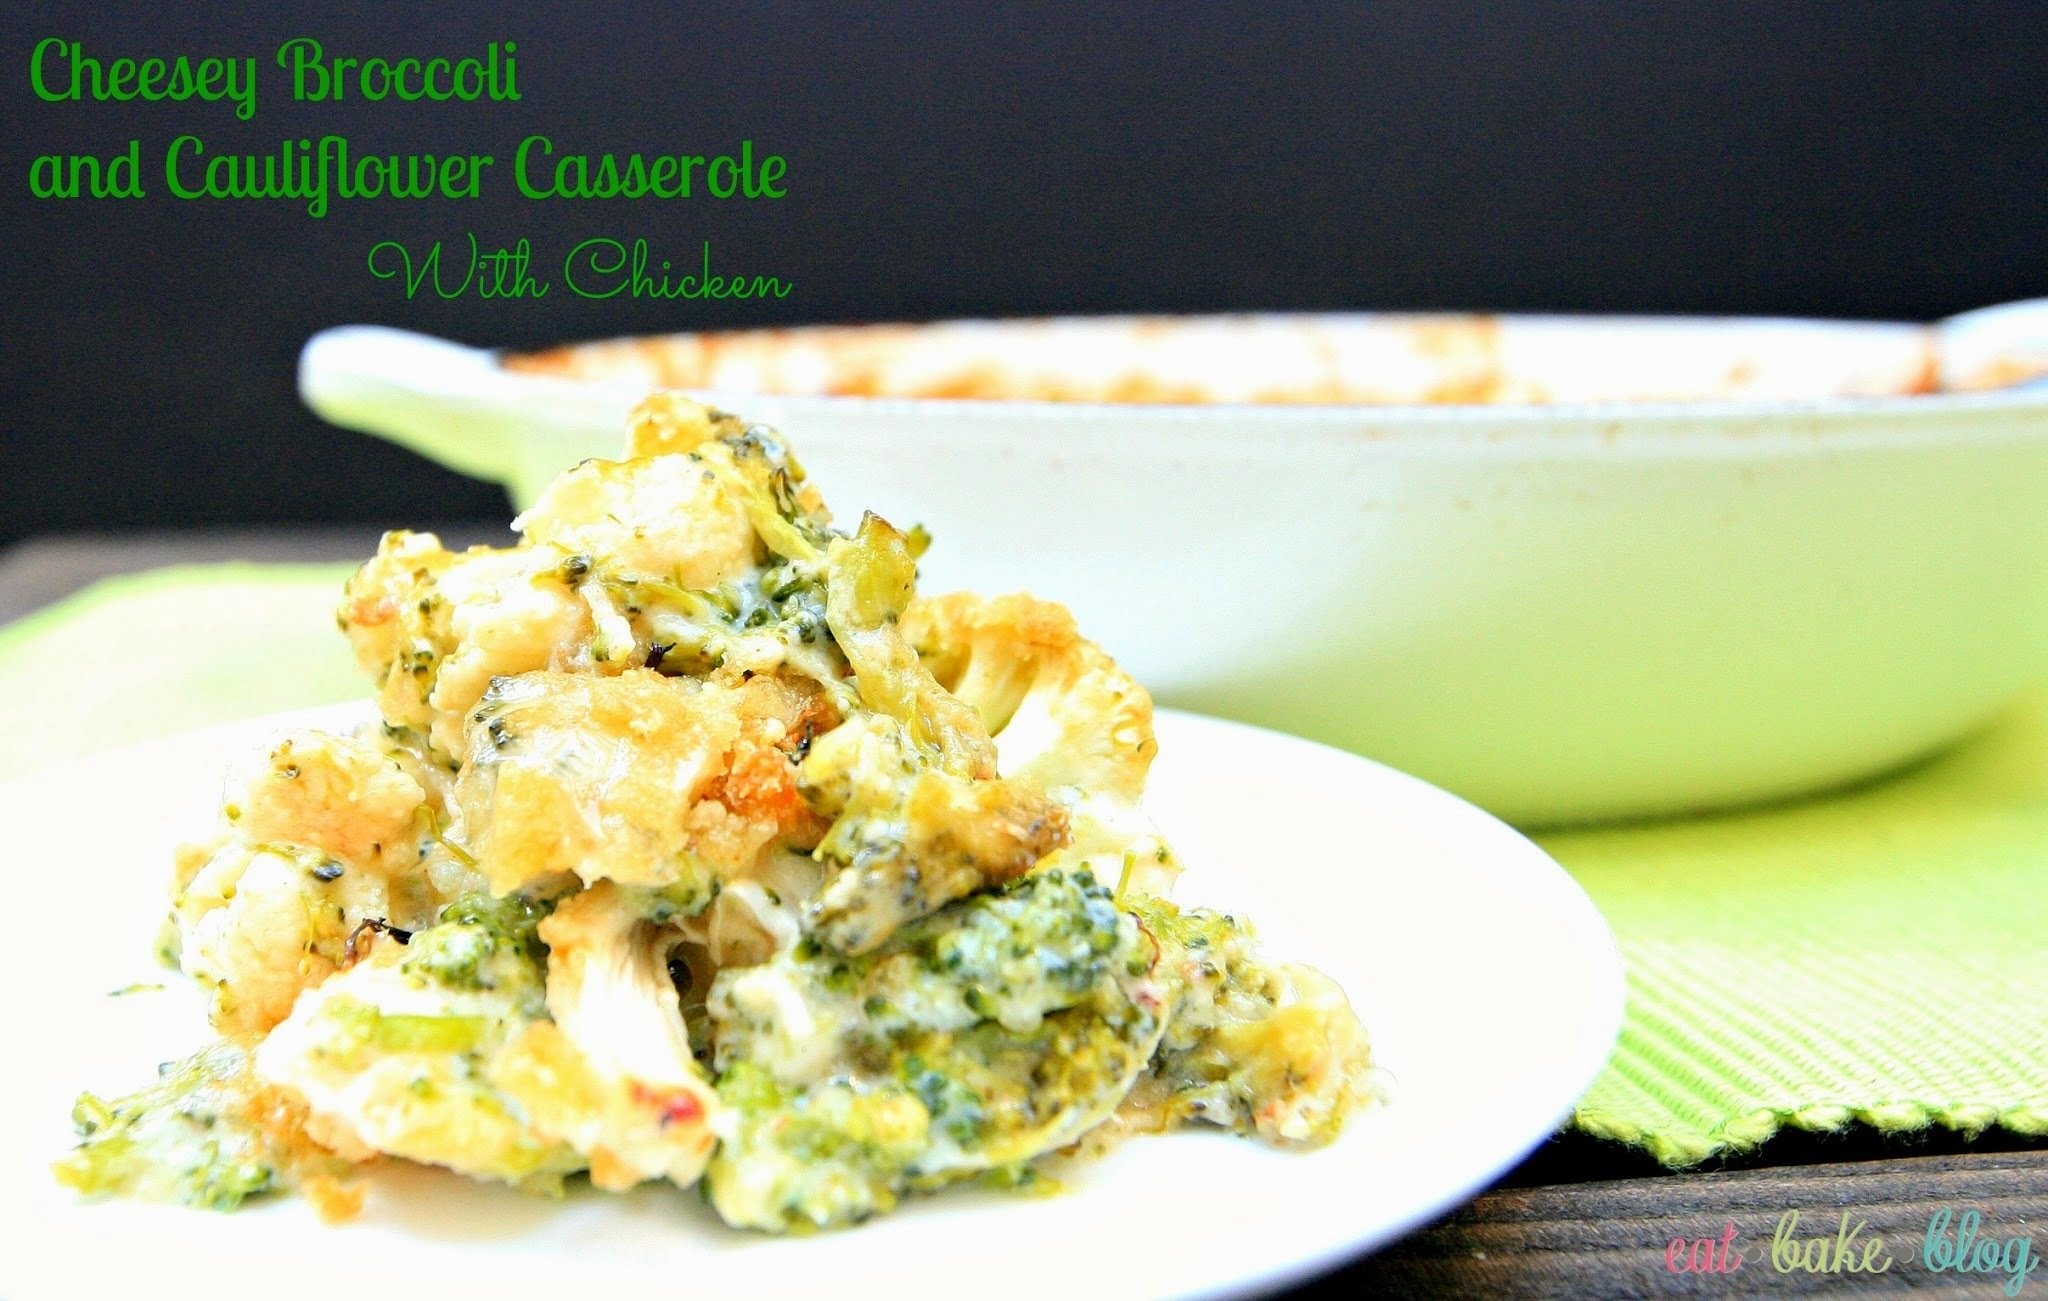 Cheesy Broccoli and Cauliflower Casserole with Chicken